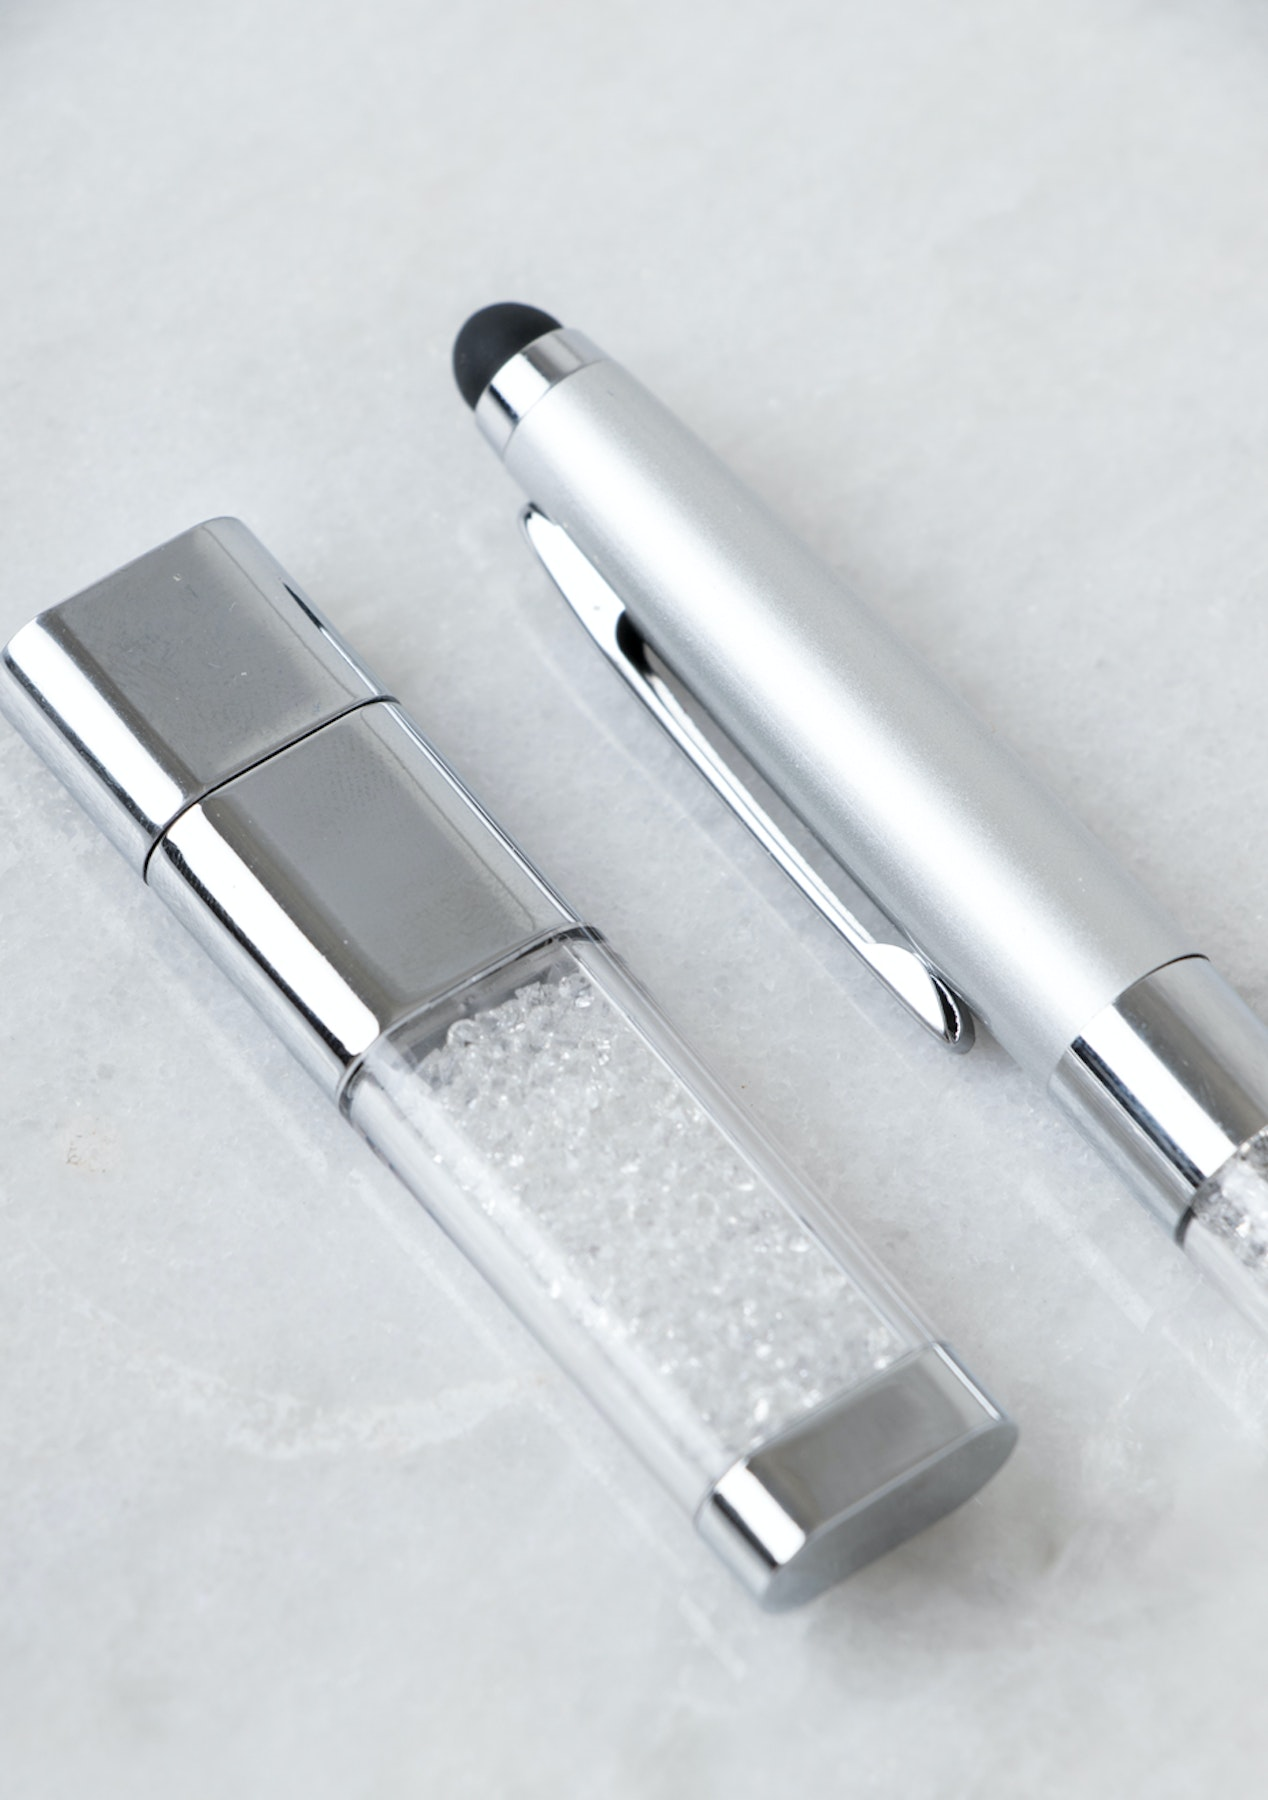 35c226e0e Swarovski Crystal Pen With USB Set - Silver - Free Shipping Jewellery -  Onceit